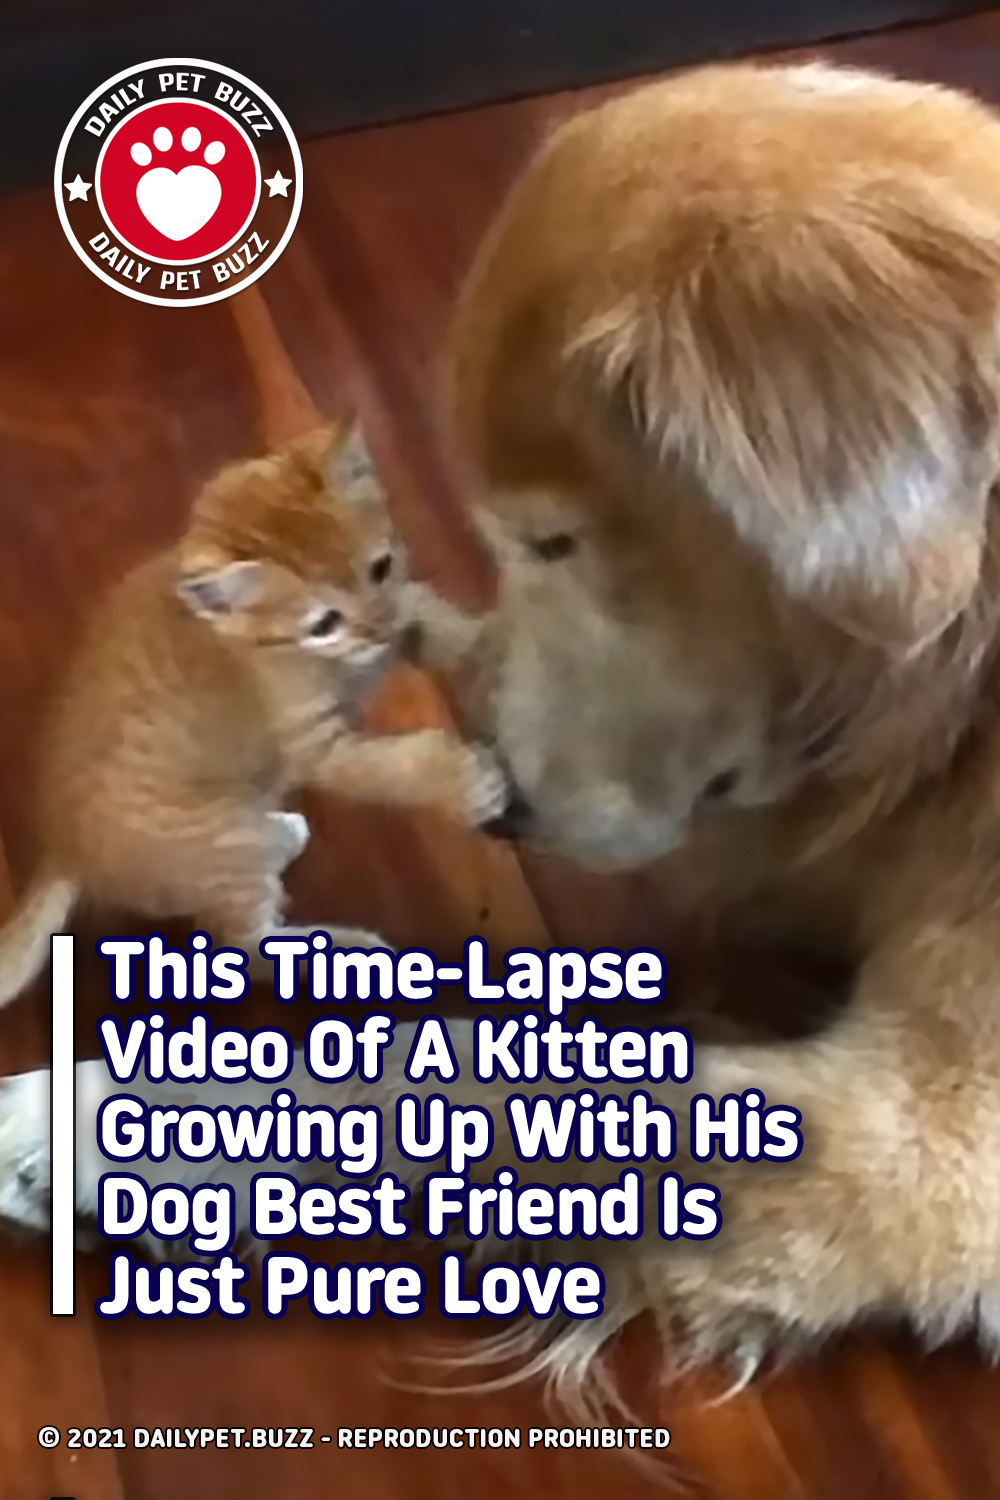 This Time-Lapse Video Of A Kitten Growing Up With His Dog Best Friend Is Just Pure Love